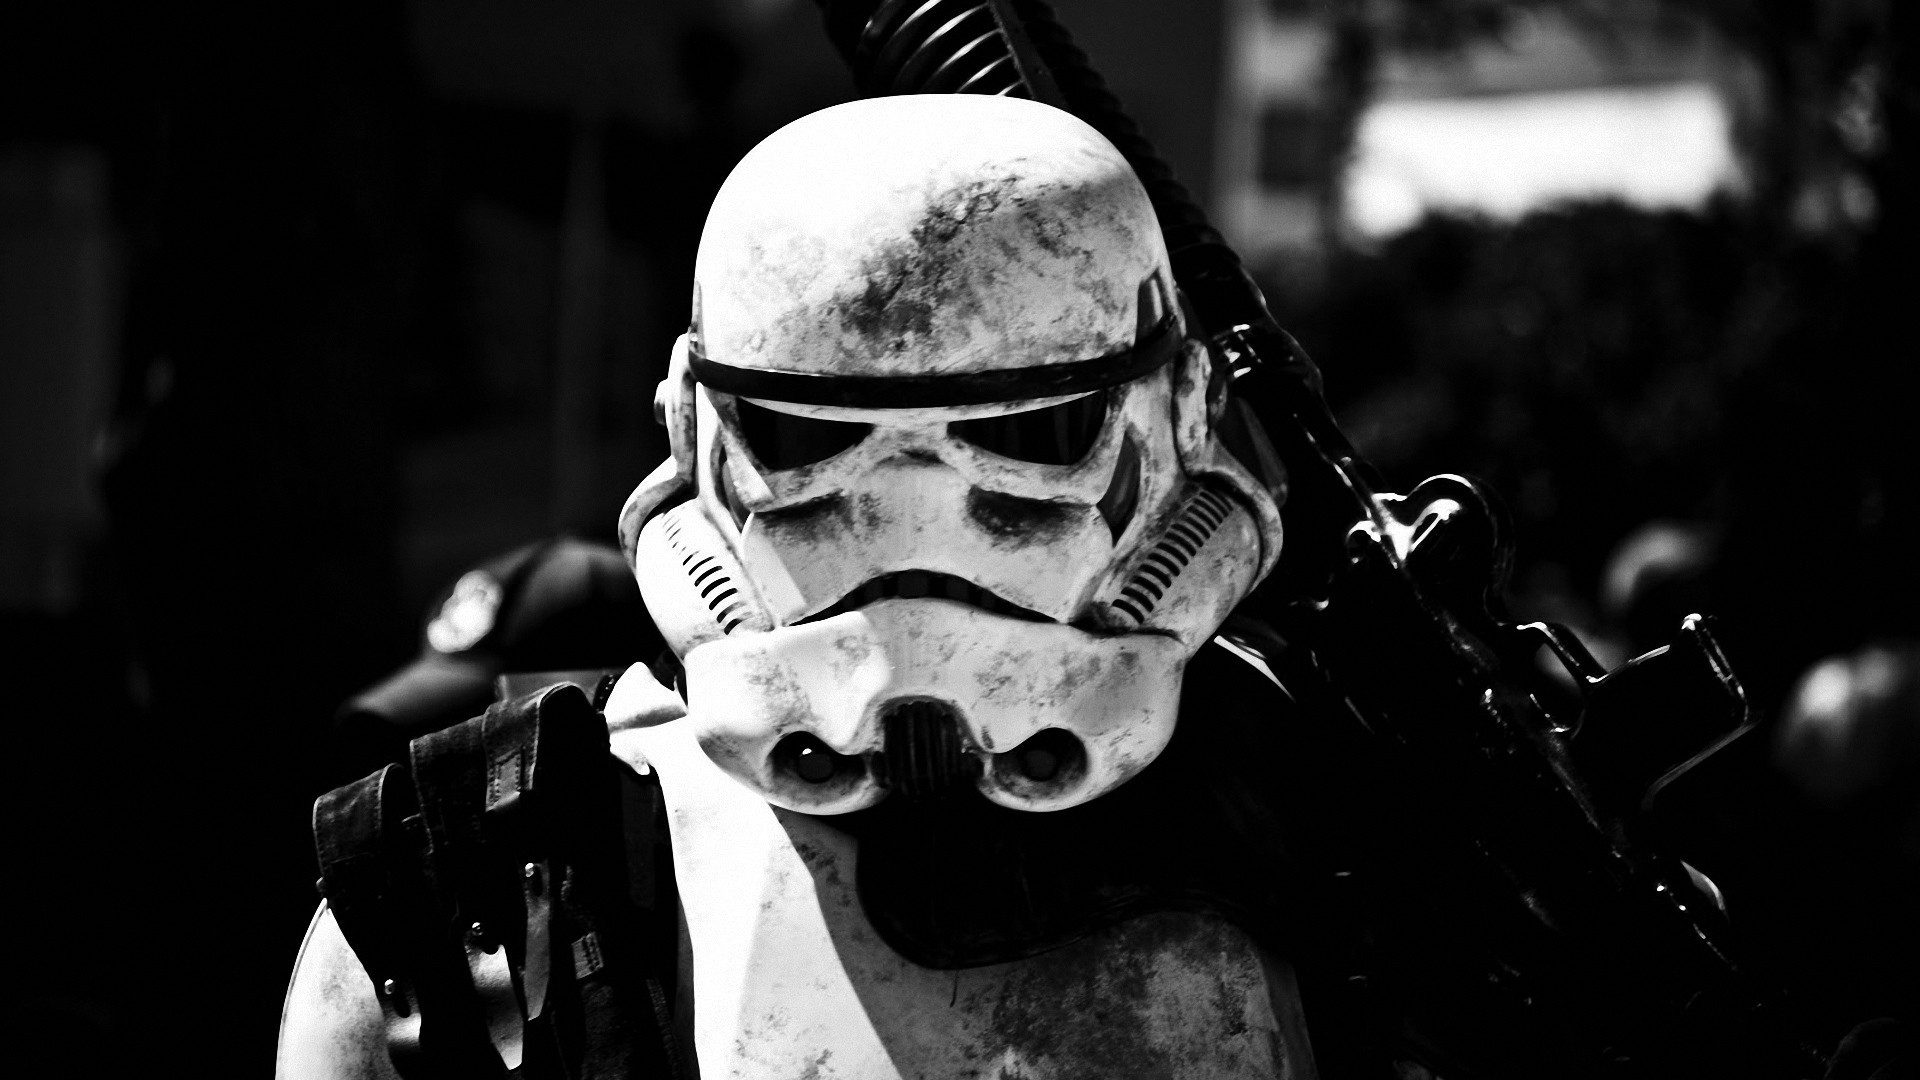 45 Storm Troopers Wallpaper On Wallpapersafari